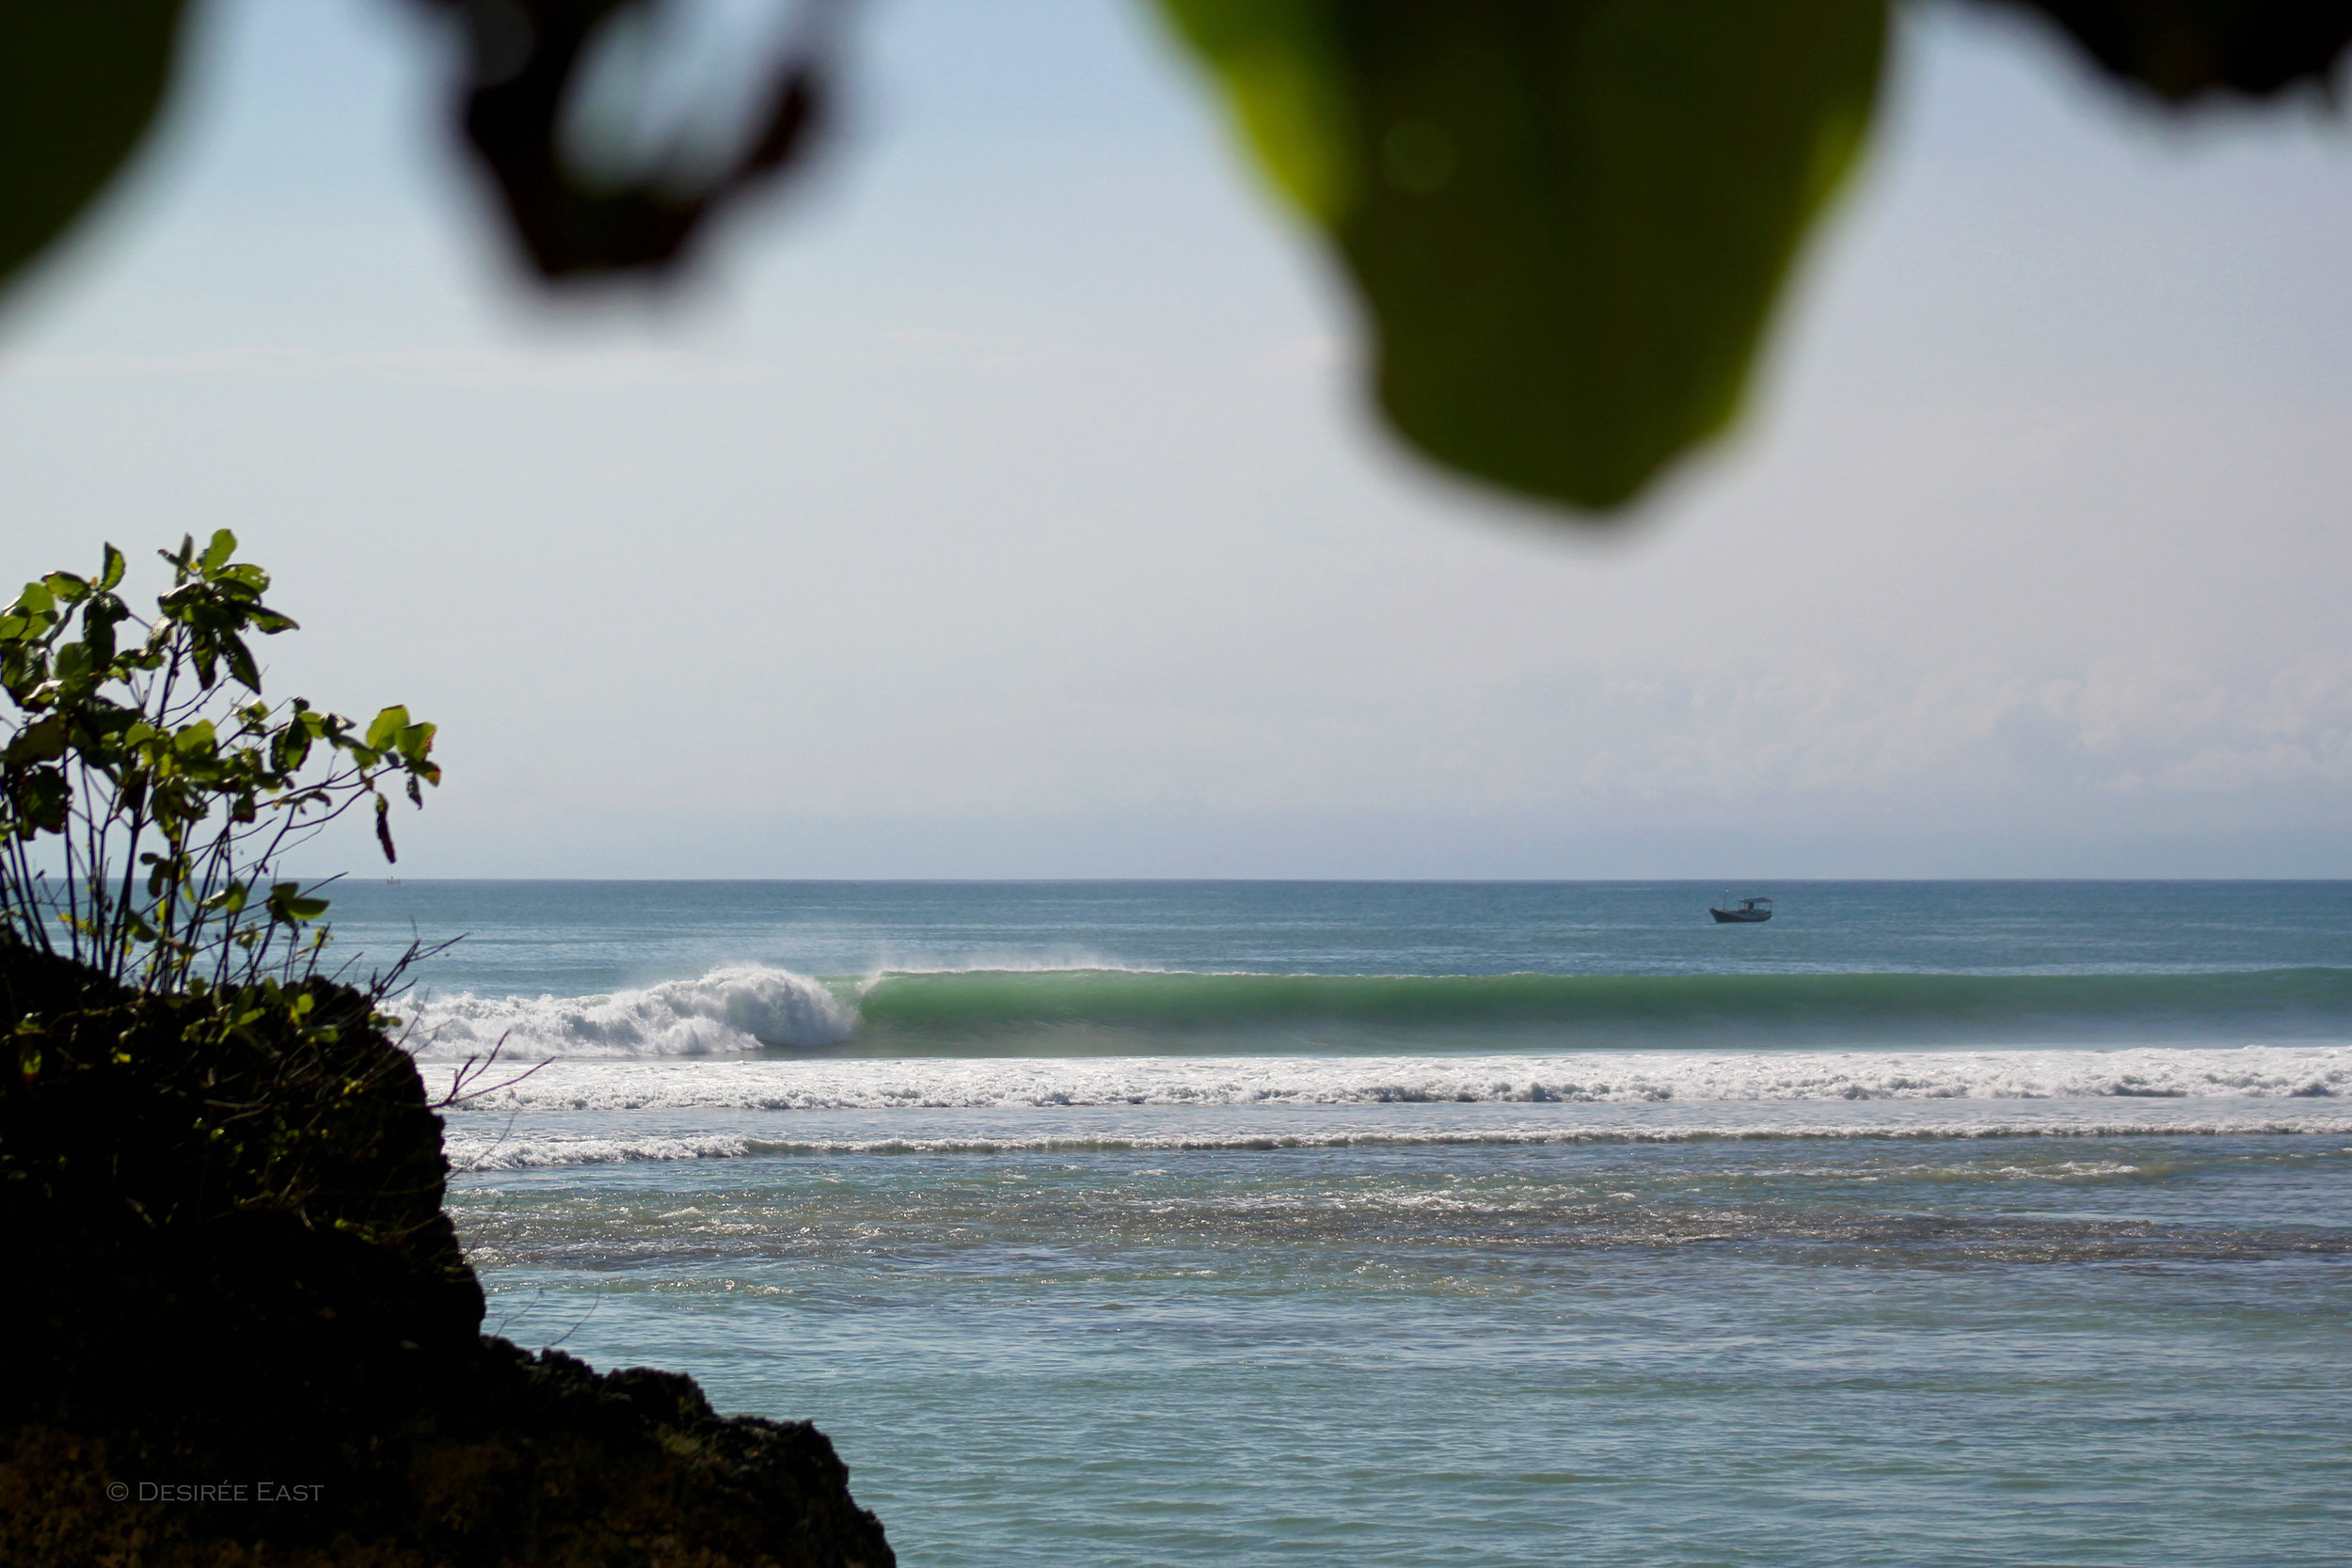 shooting from shade. bali, indonesia. photo by desiree east